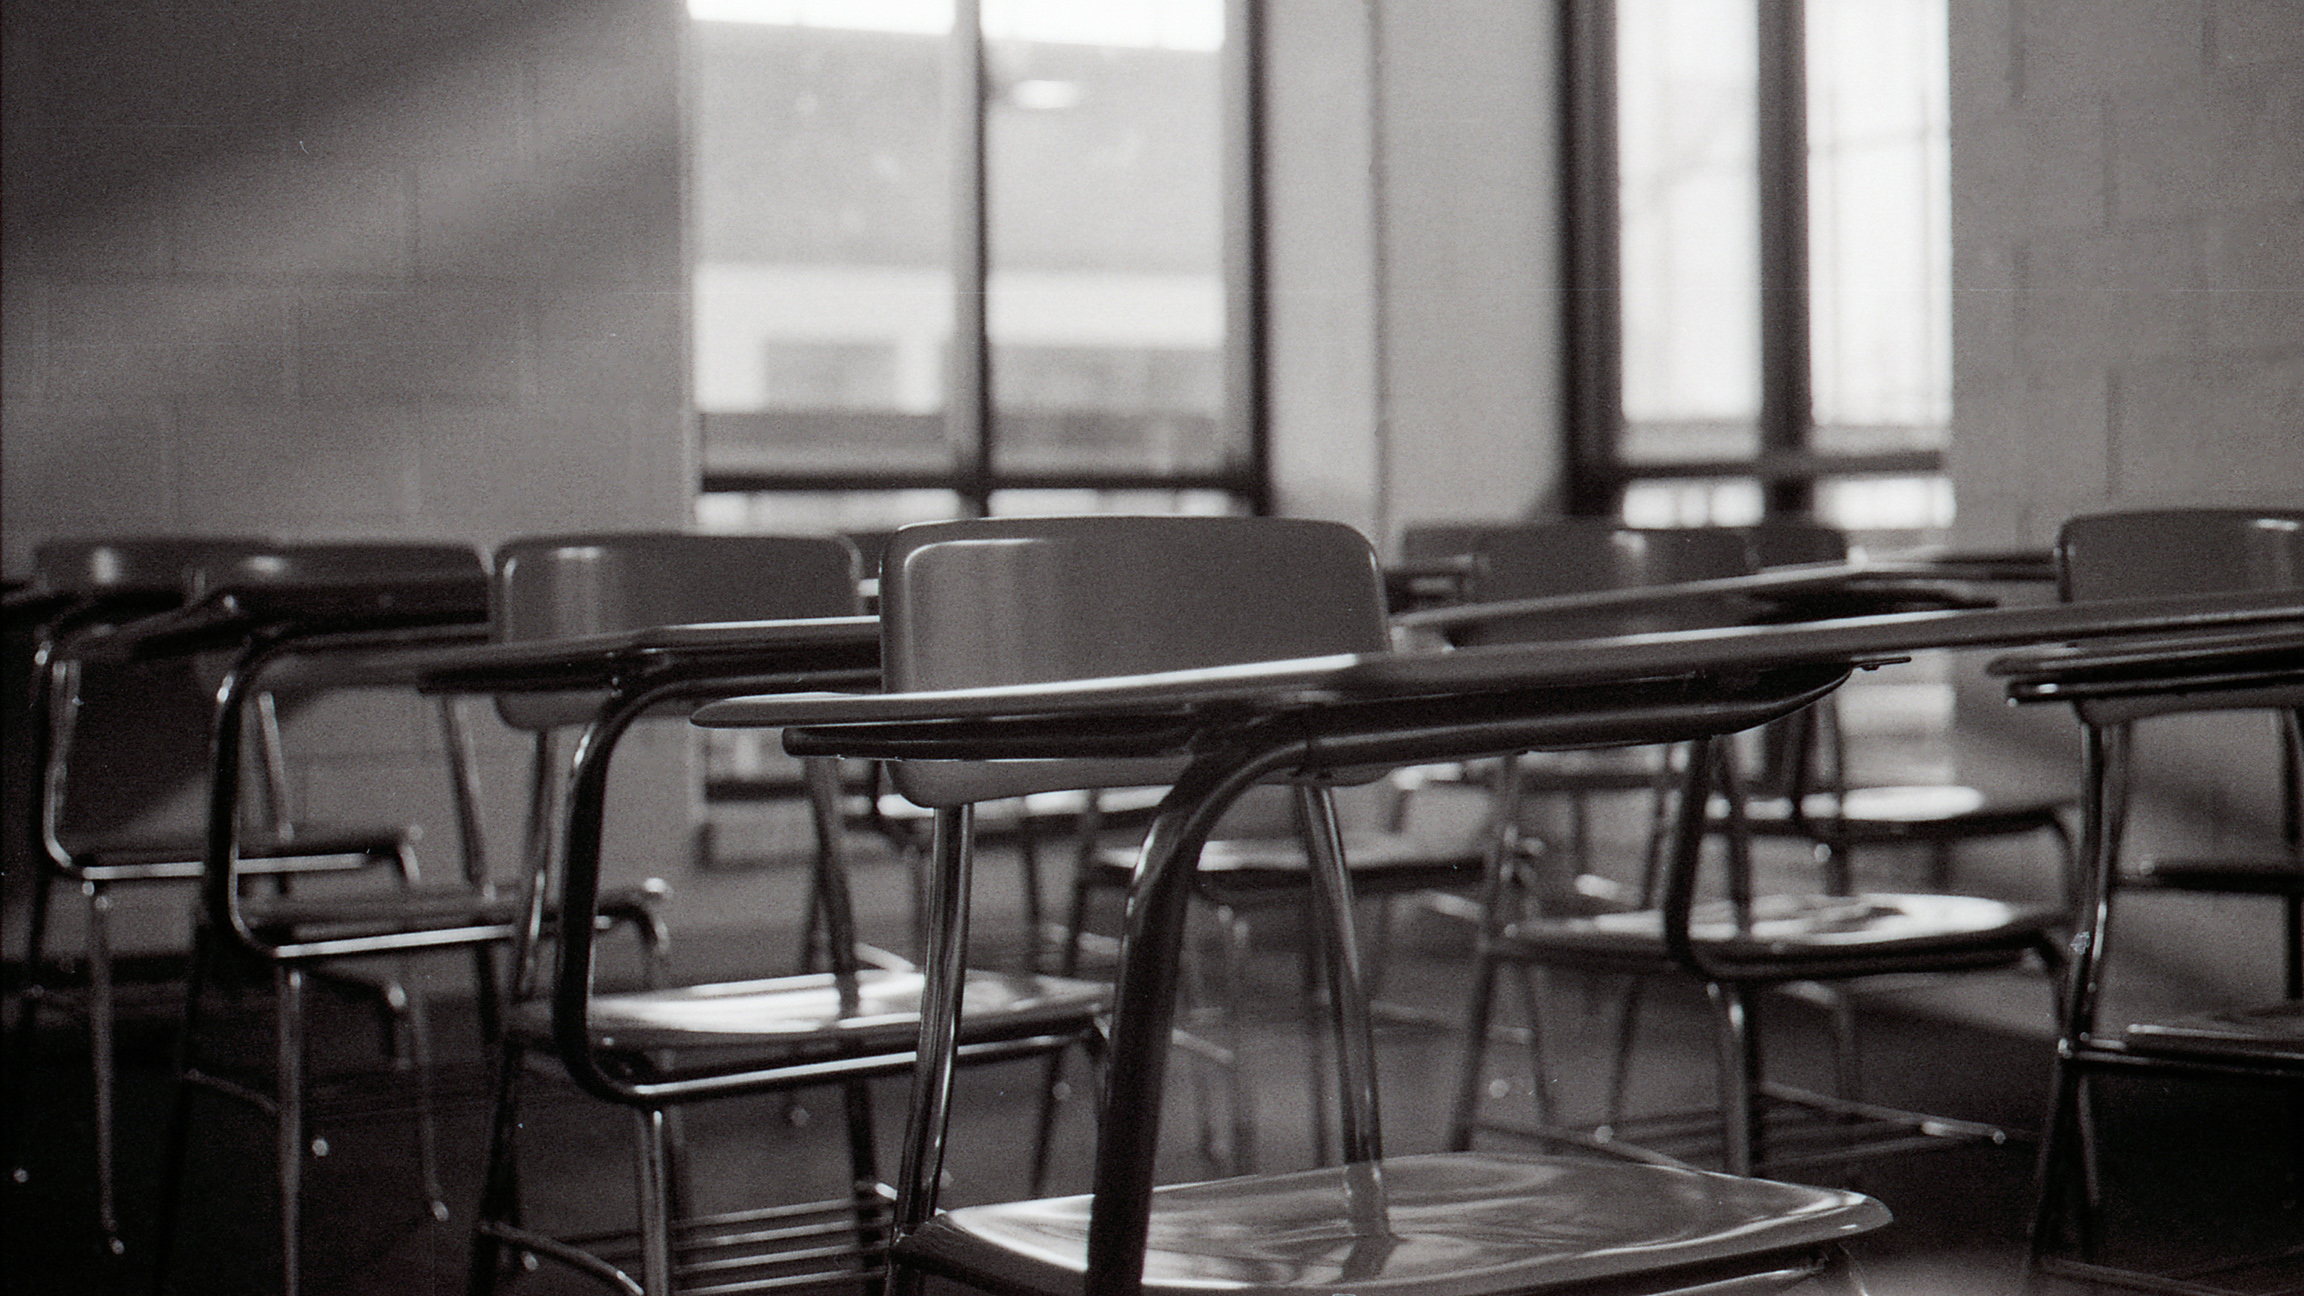 CPS Teacher Removed After Allegedly Bringing in Friend to Beat